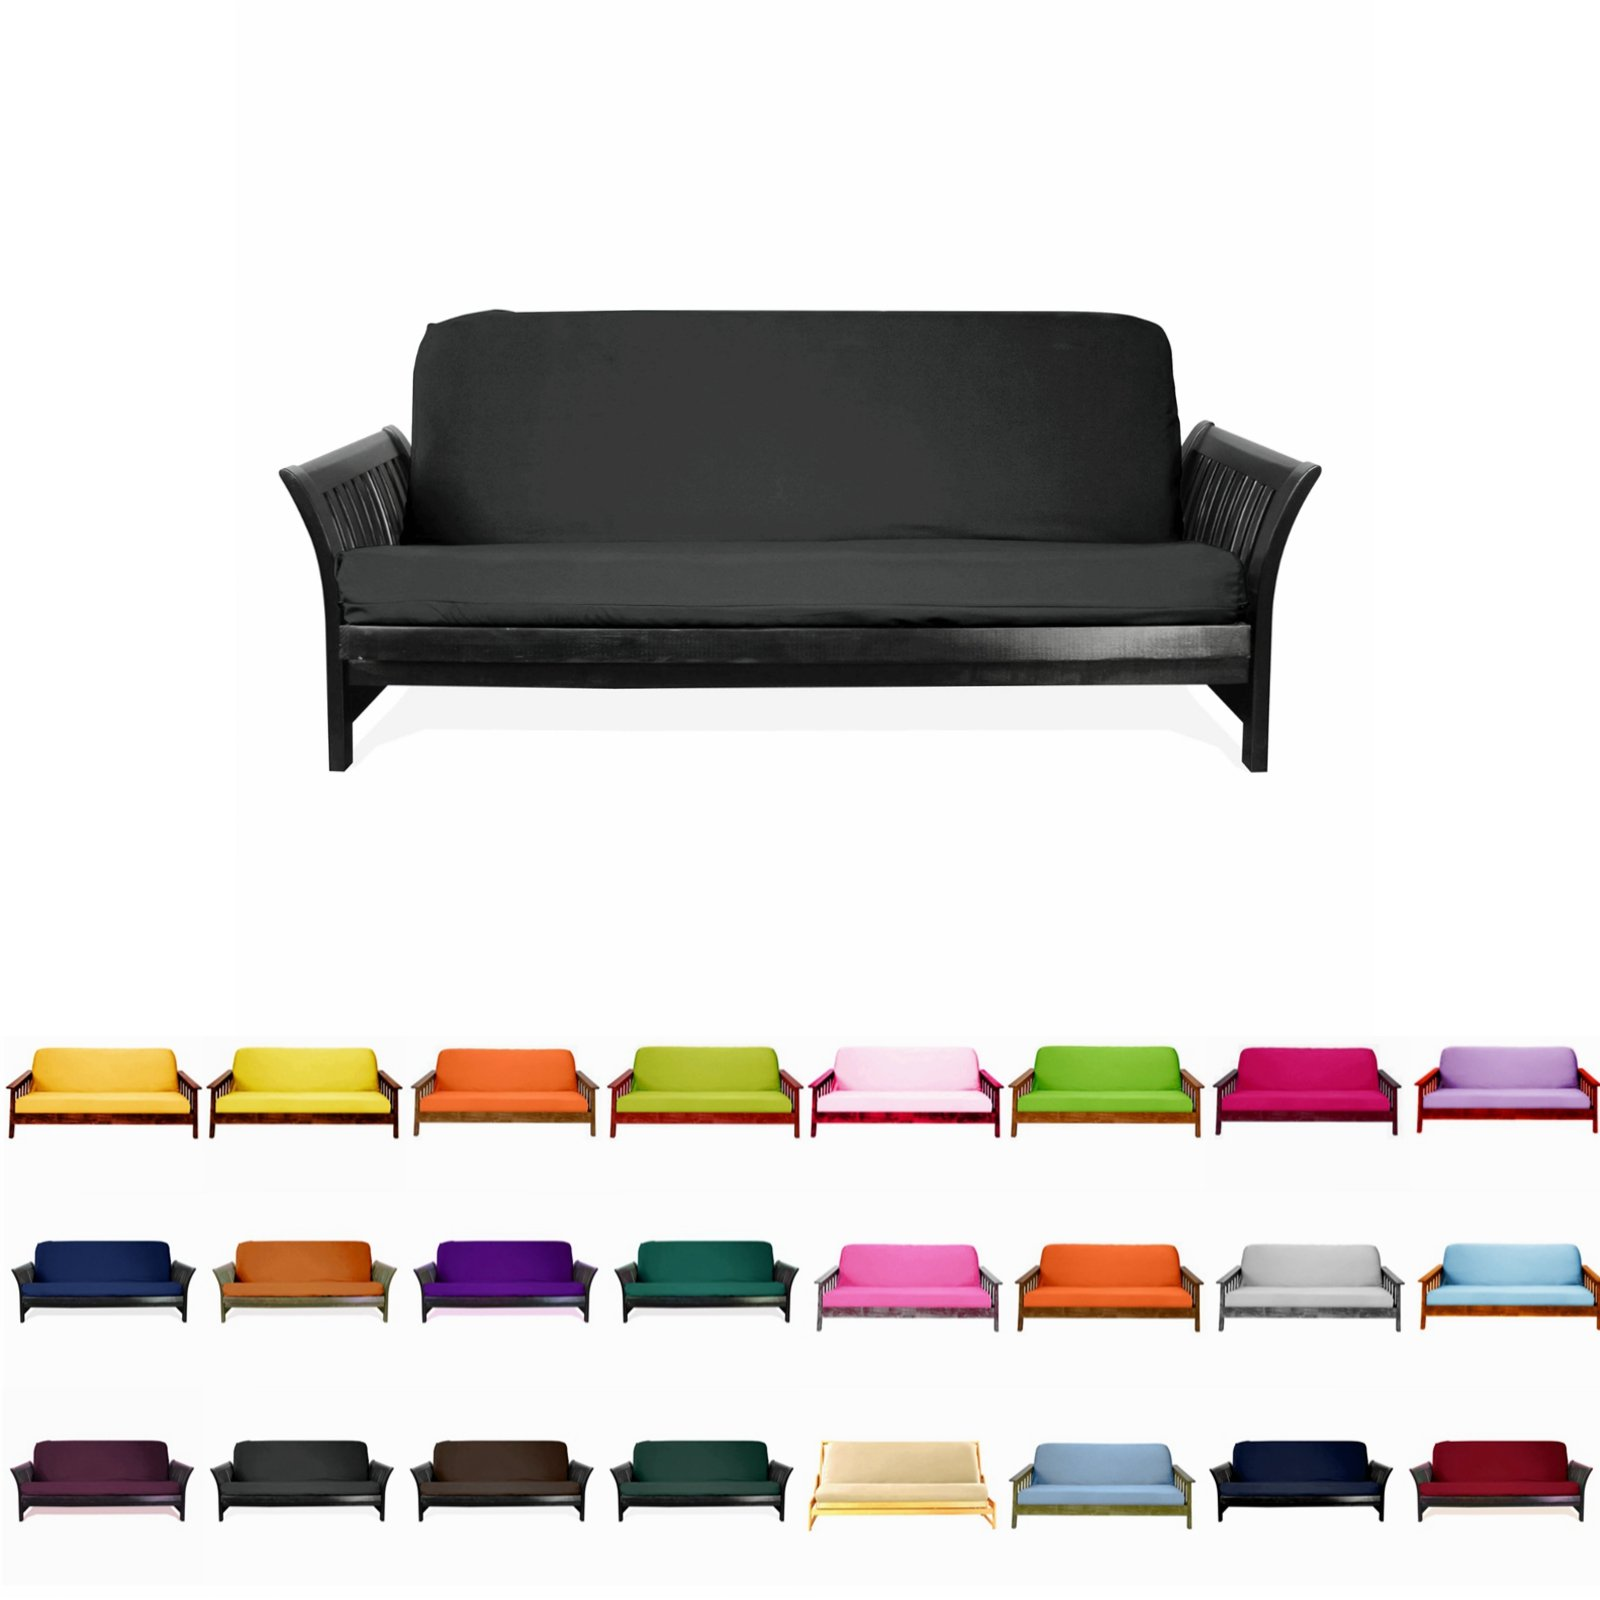 Magshion F Futon-F-Blk Colorful Cover Slipcover, Full Size, Black by Magshion